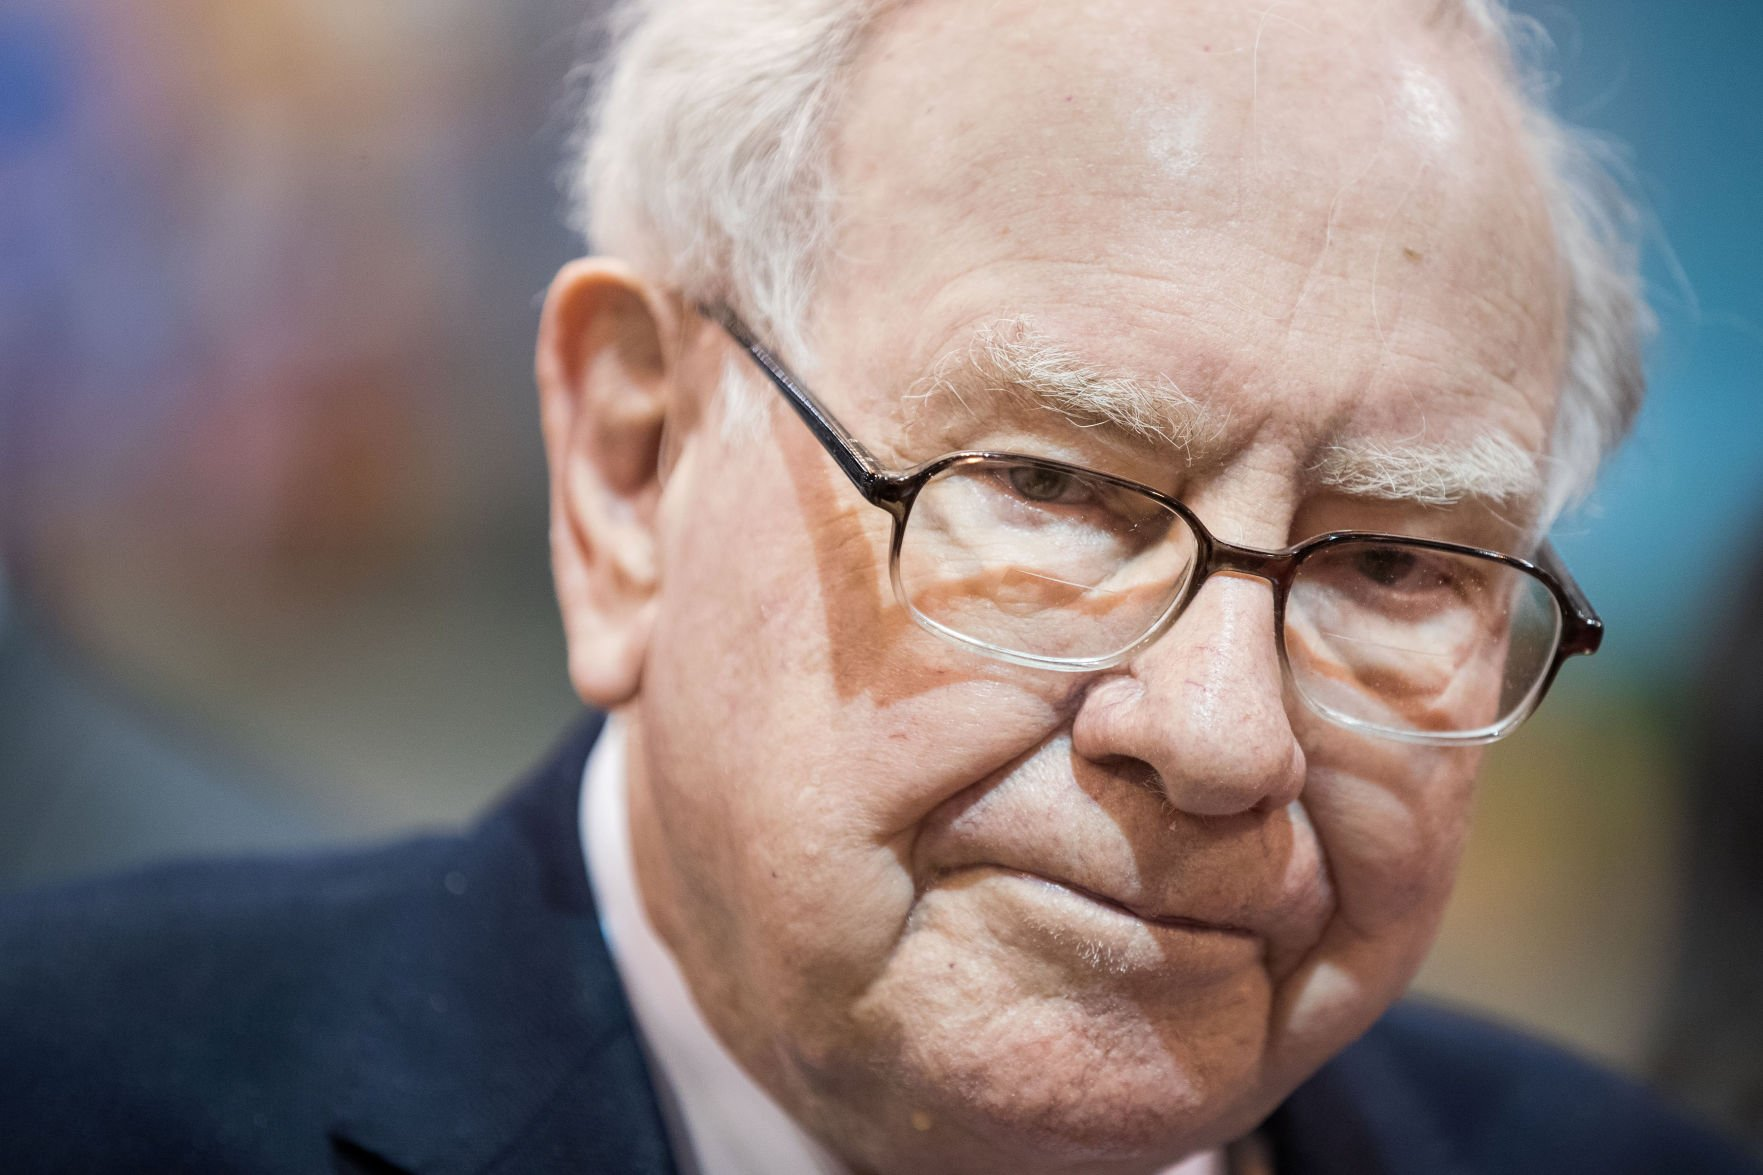 Home Capital Shareholders Reject Buffett's Expanded Stake